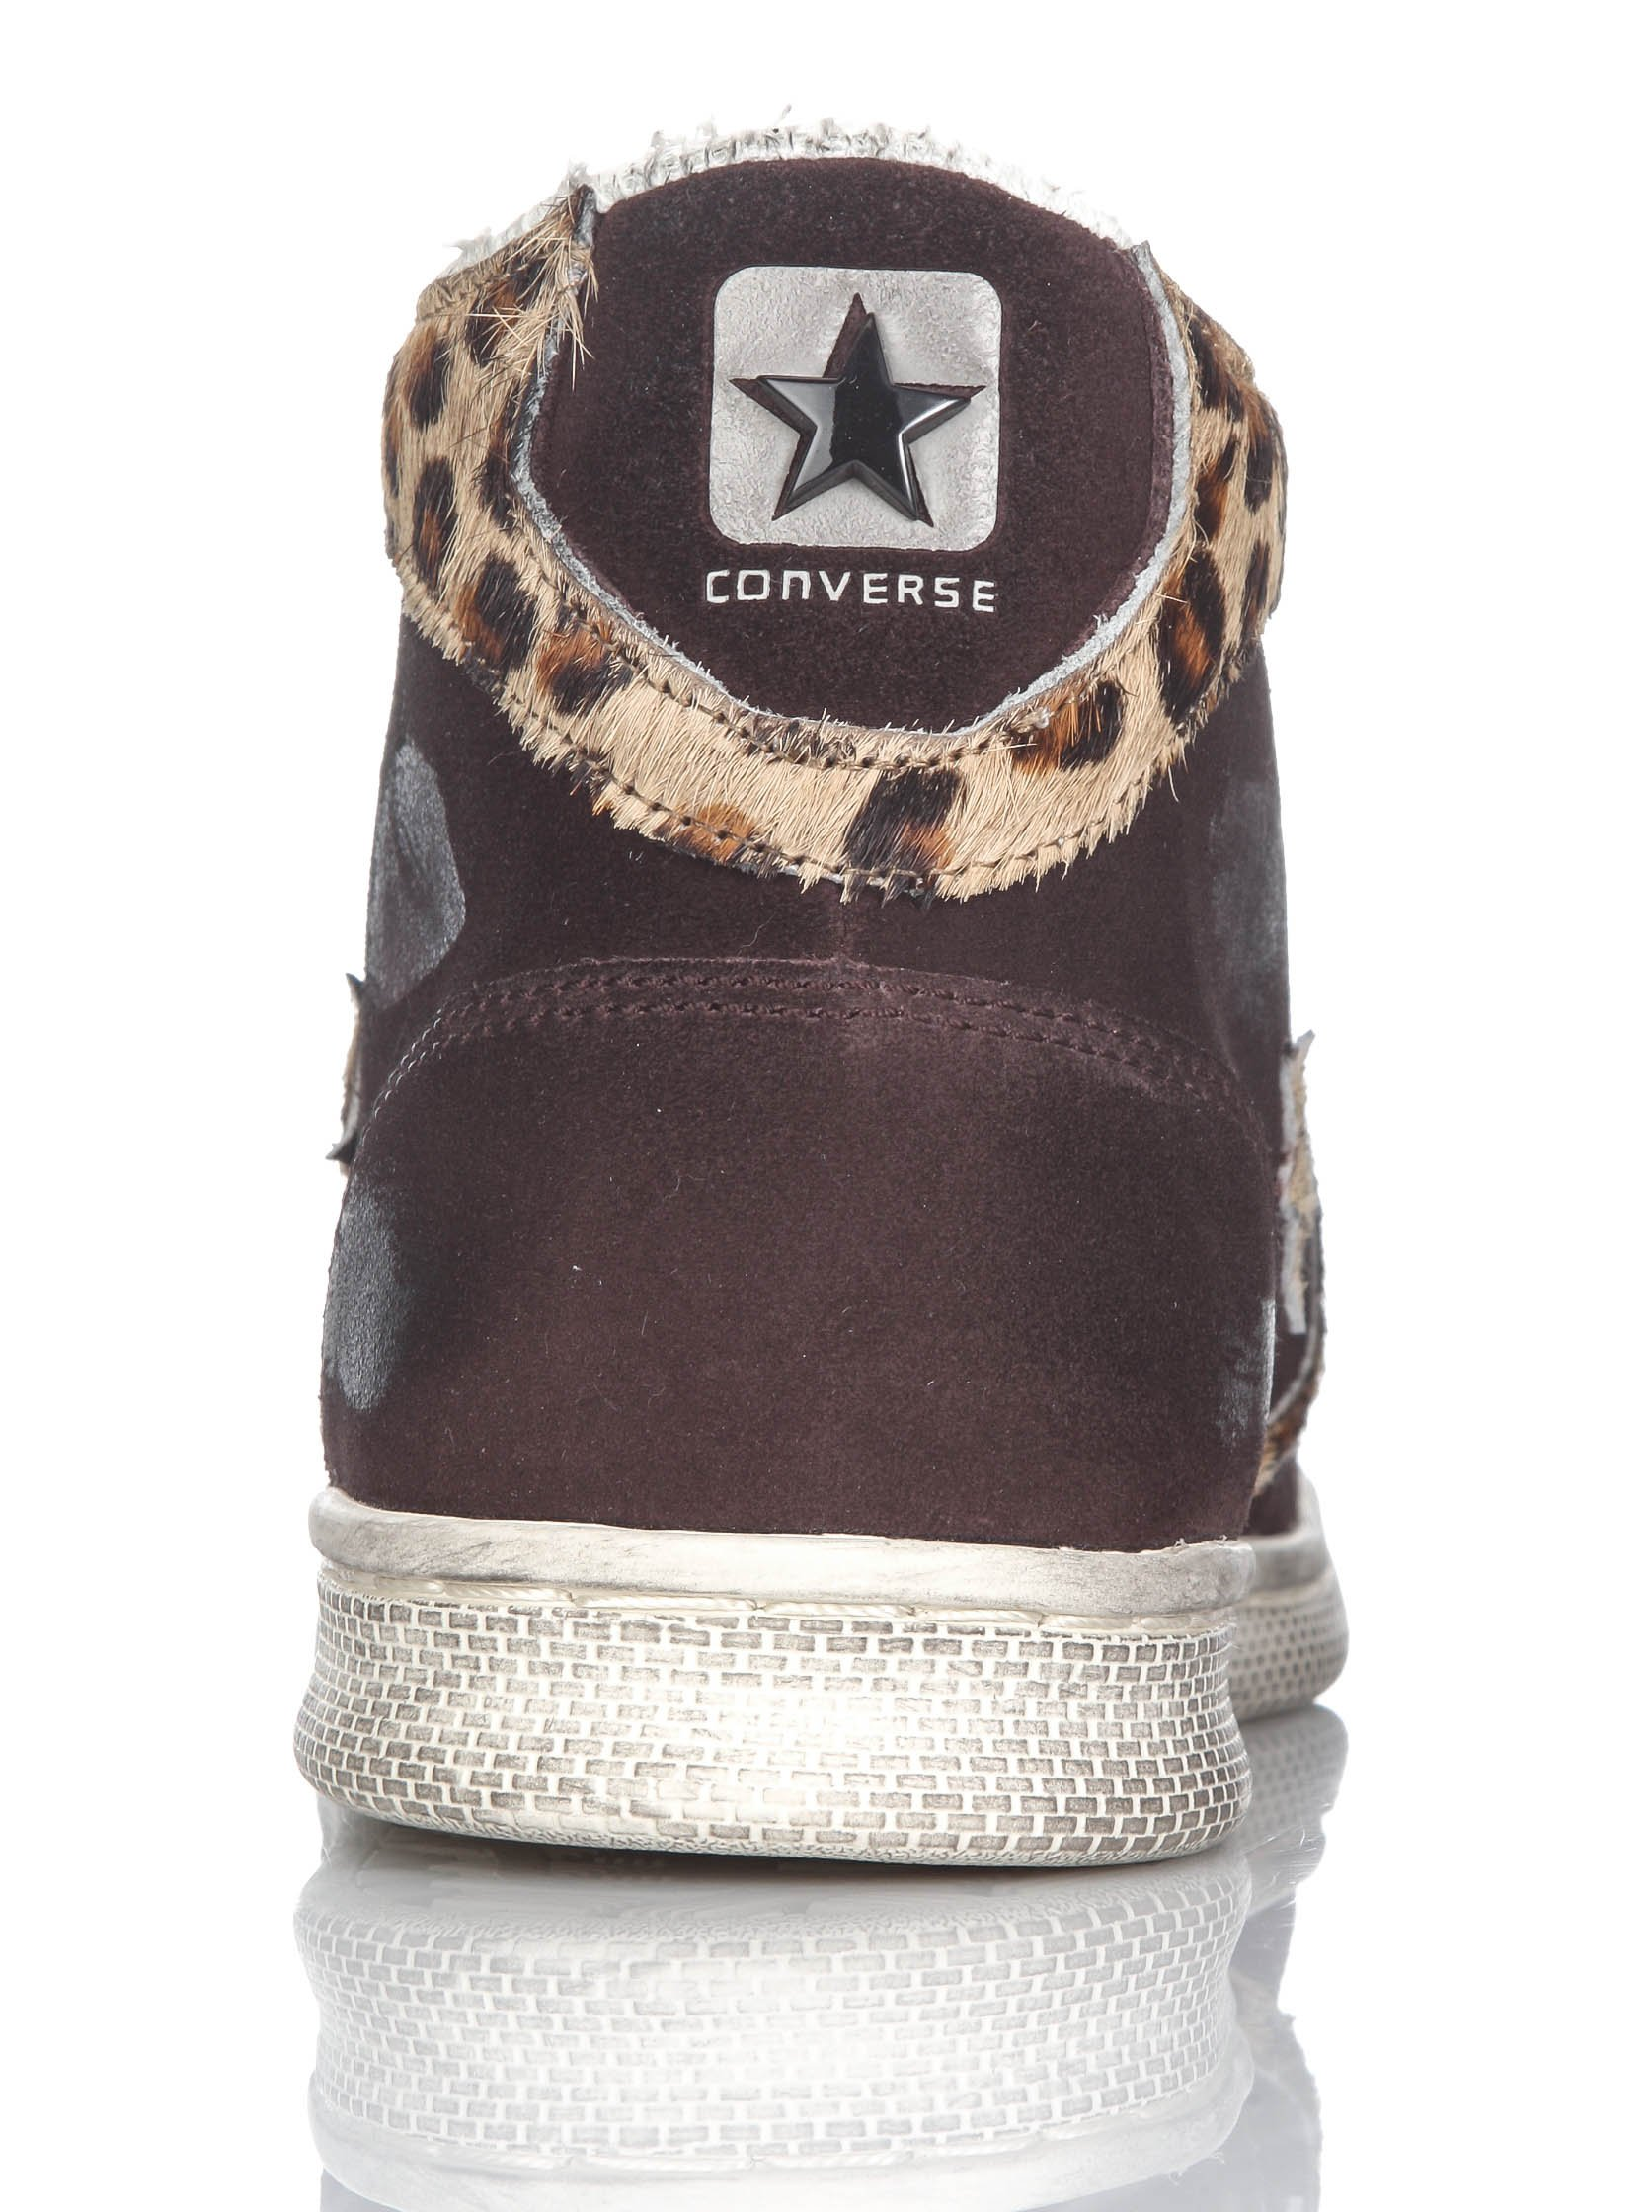 Converse Zapatillas Pro Leather Mid Suede Ltd Chocolate EU 37 (US 4,5)